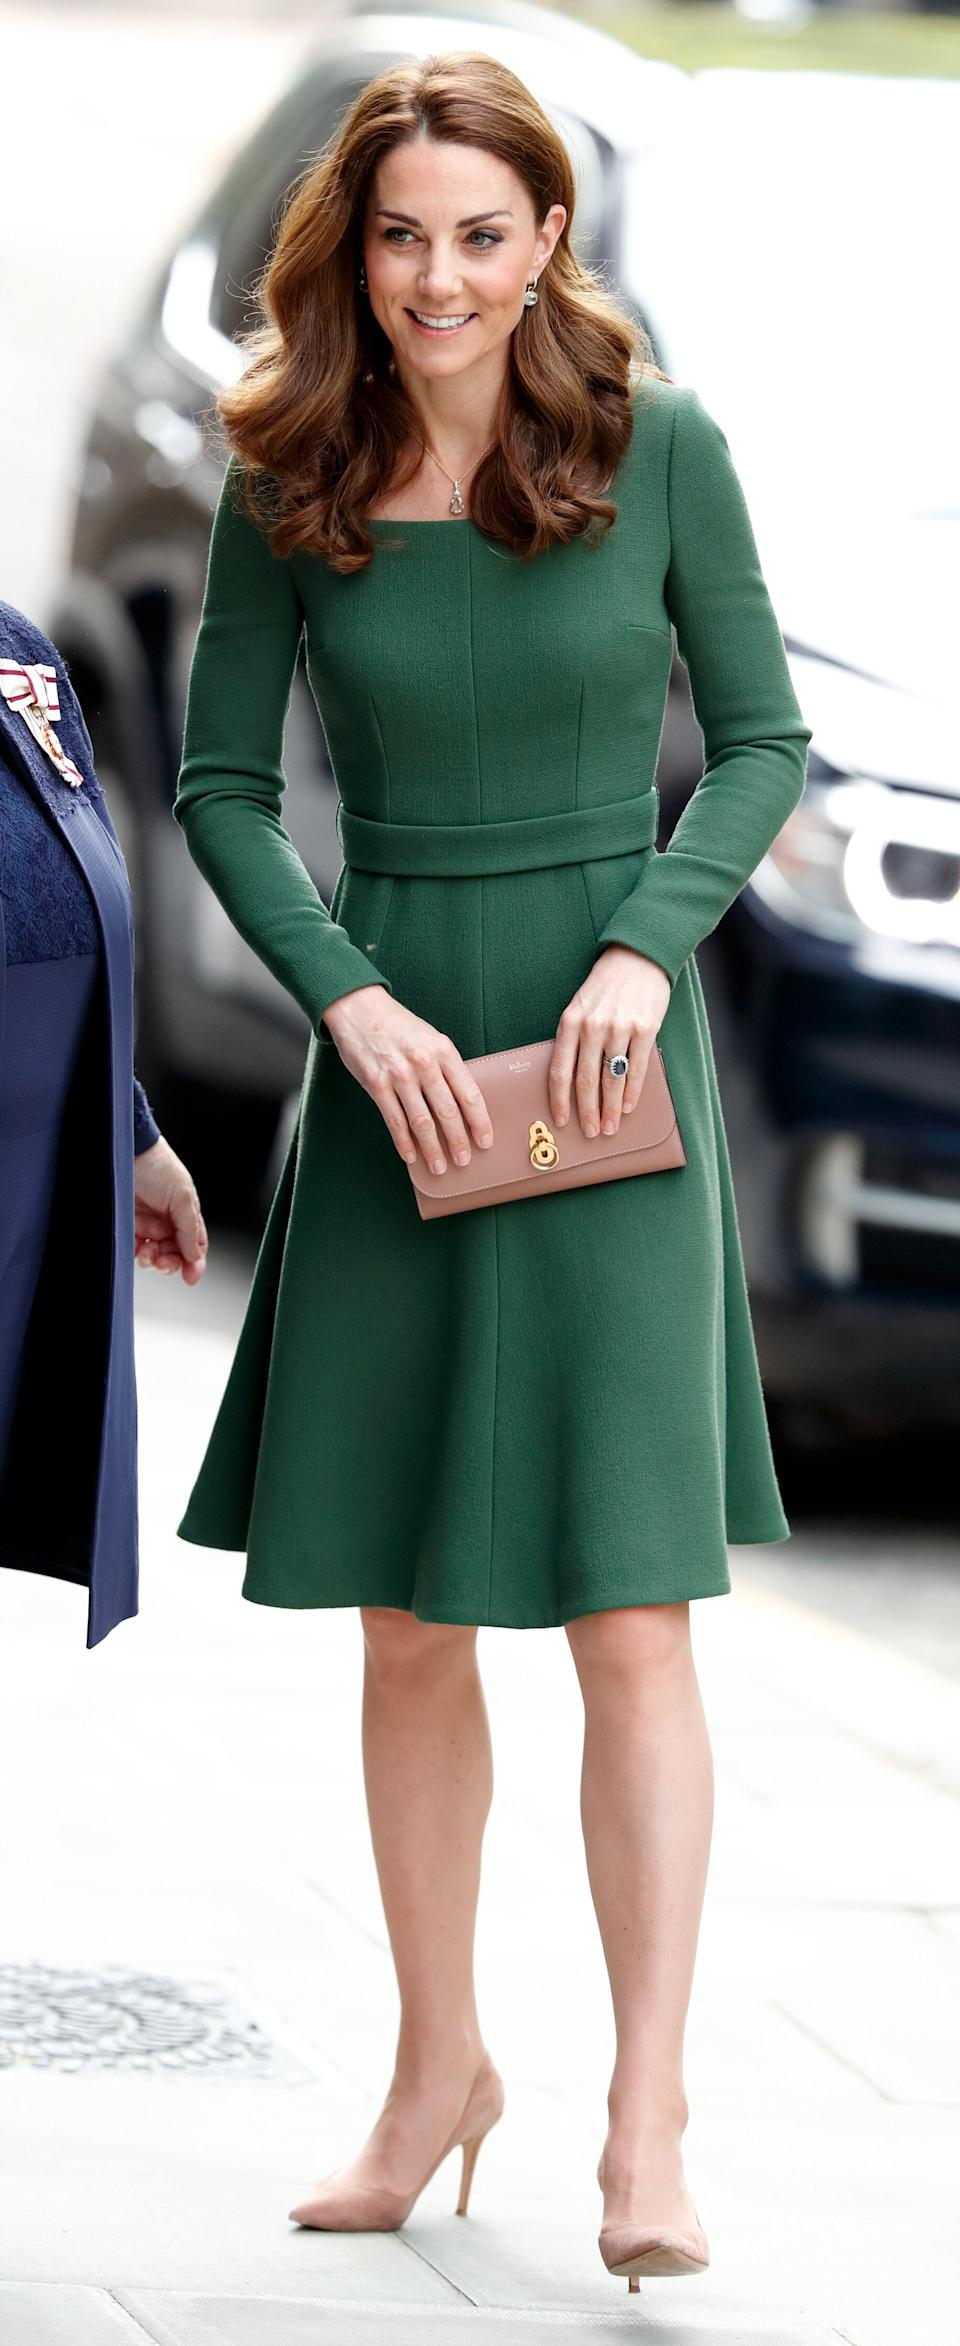 The duchess arrives to officially open the new Anna Freud Centre Of Excellence in London on May 1.